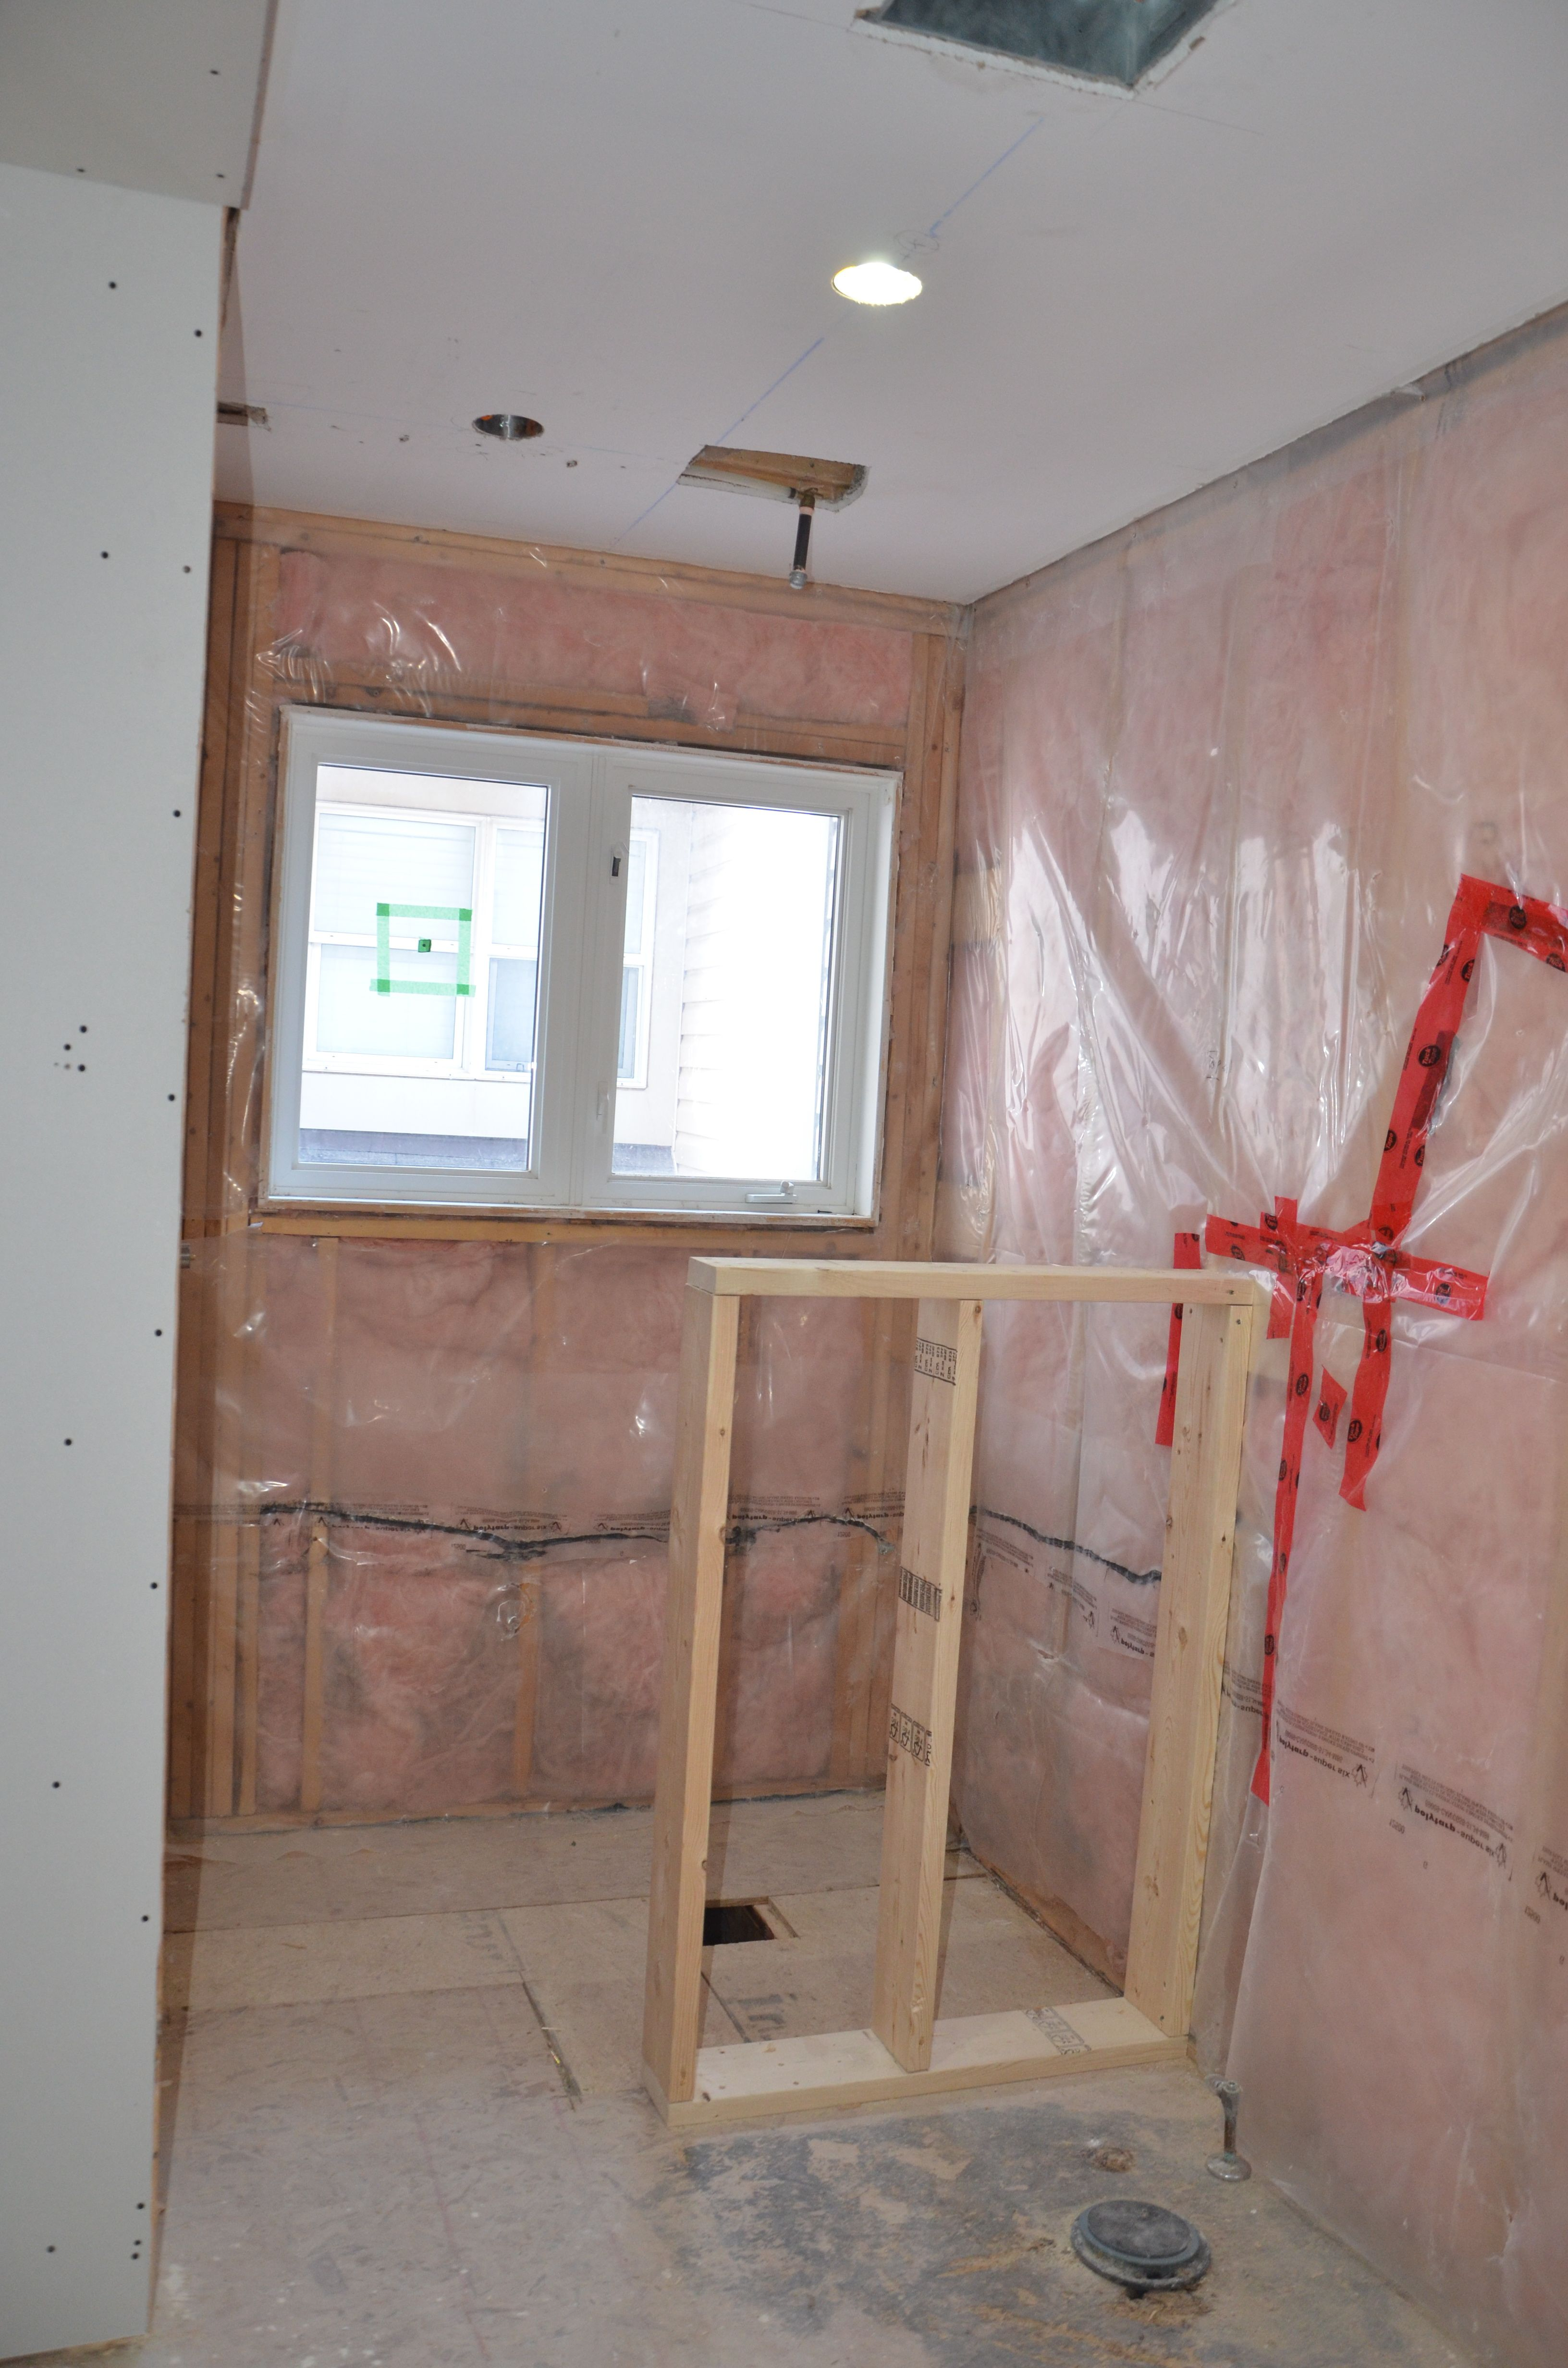 Shower area framed in